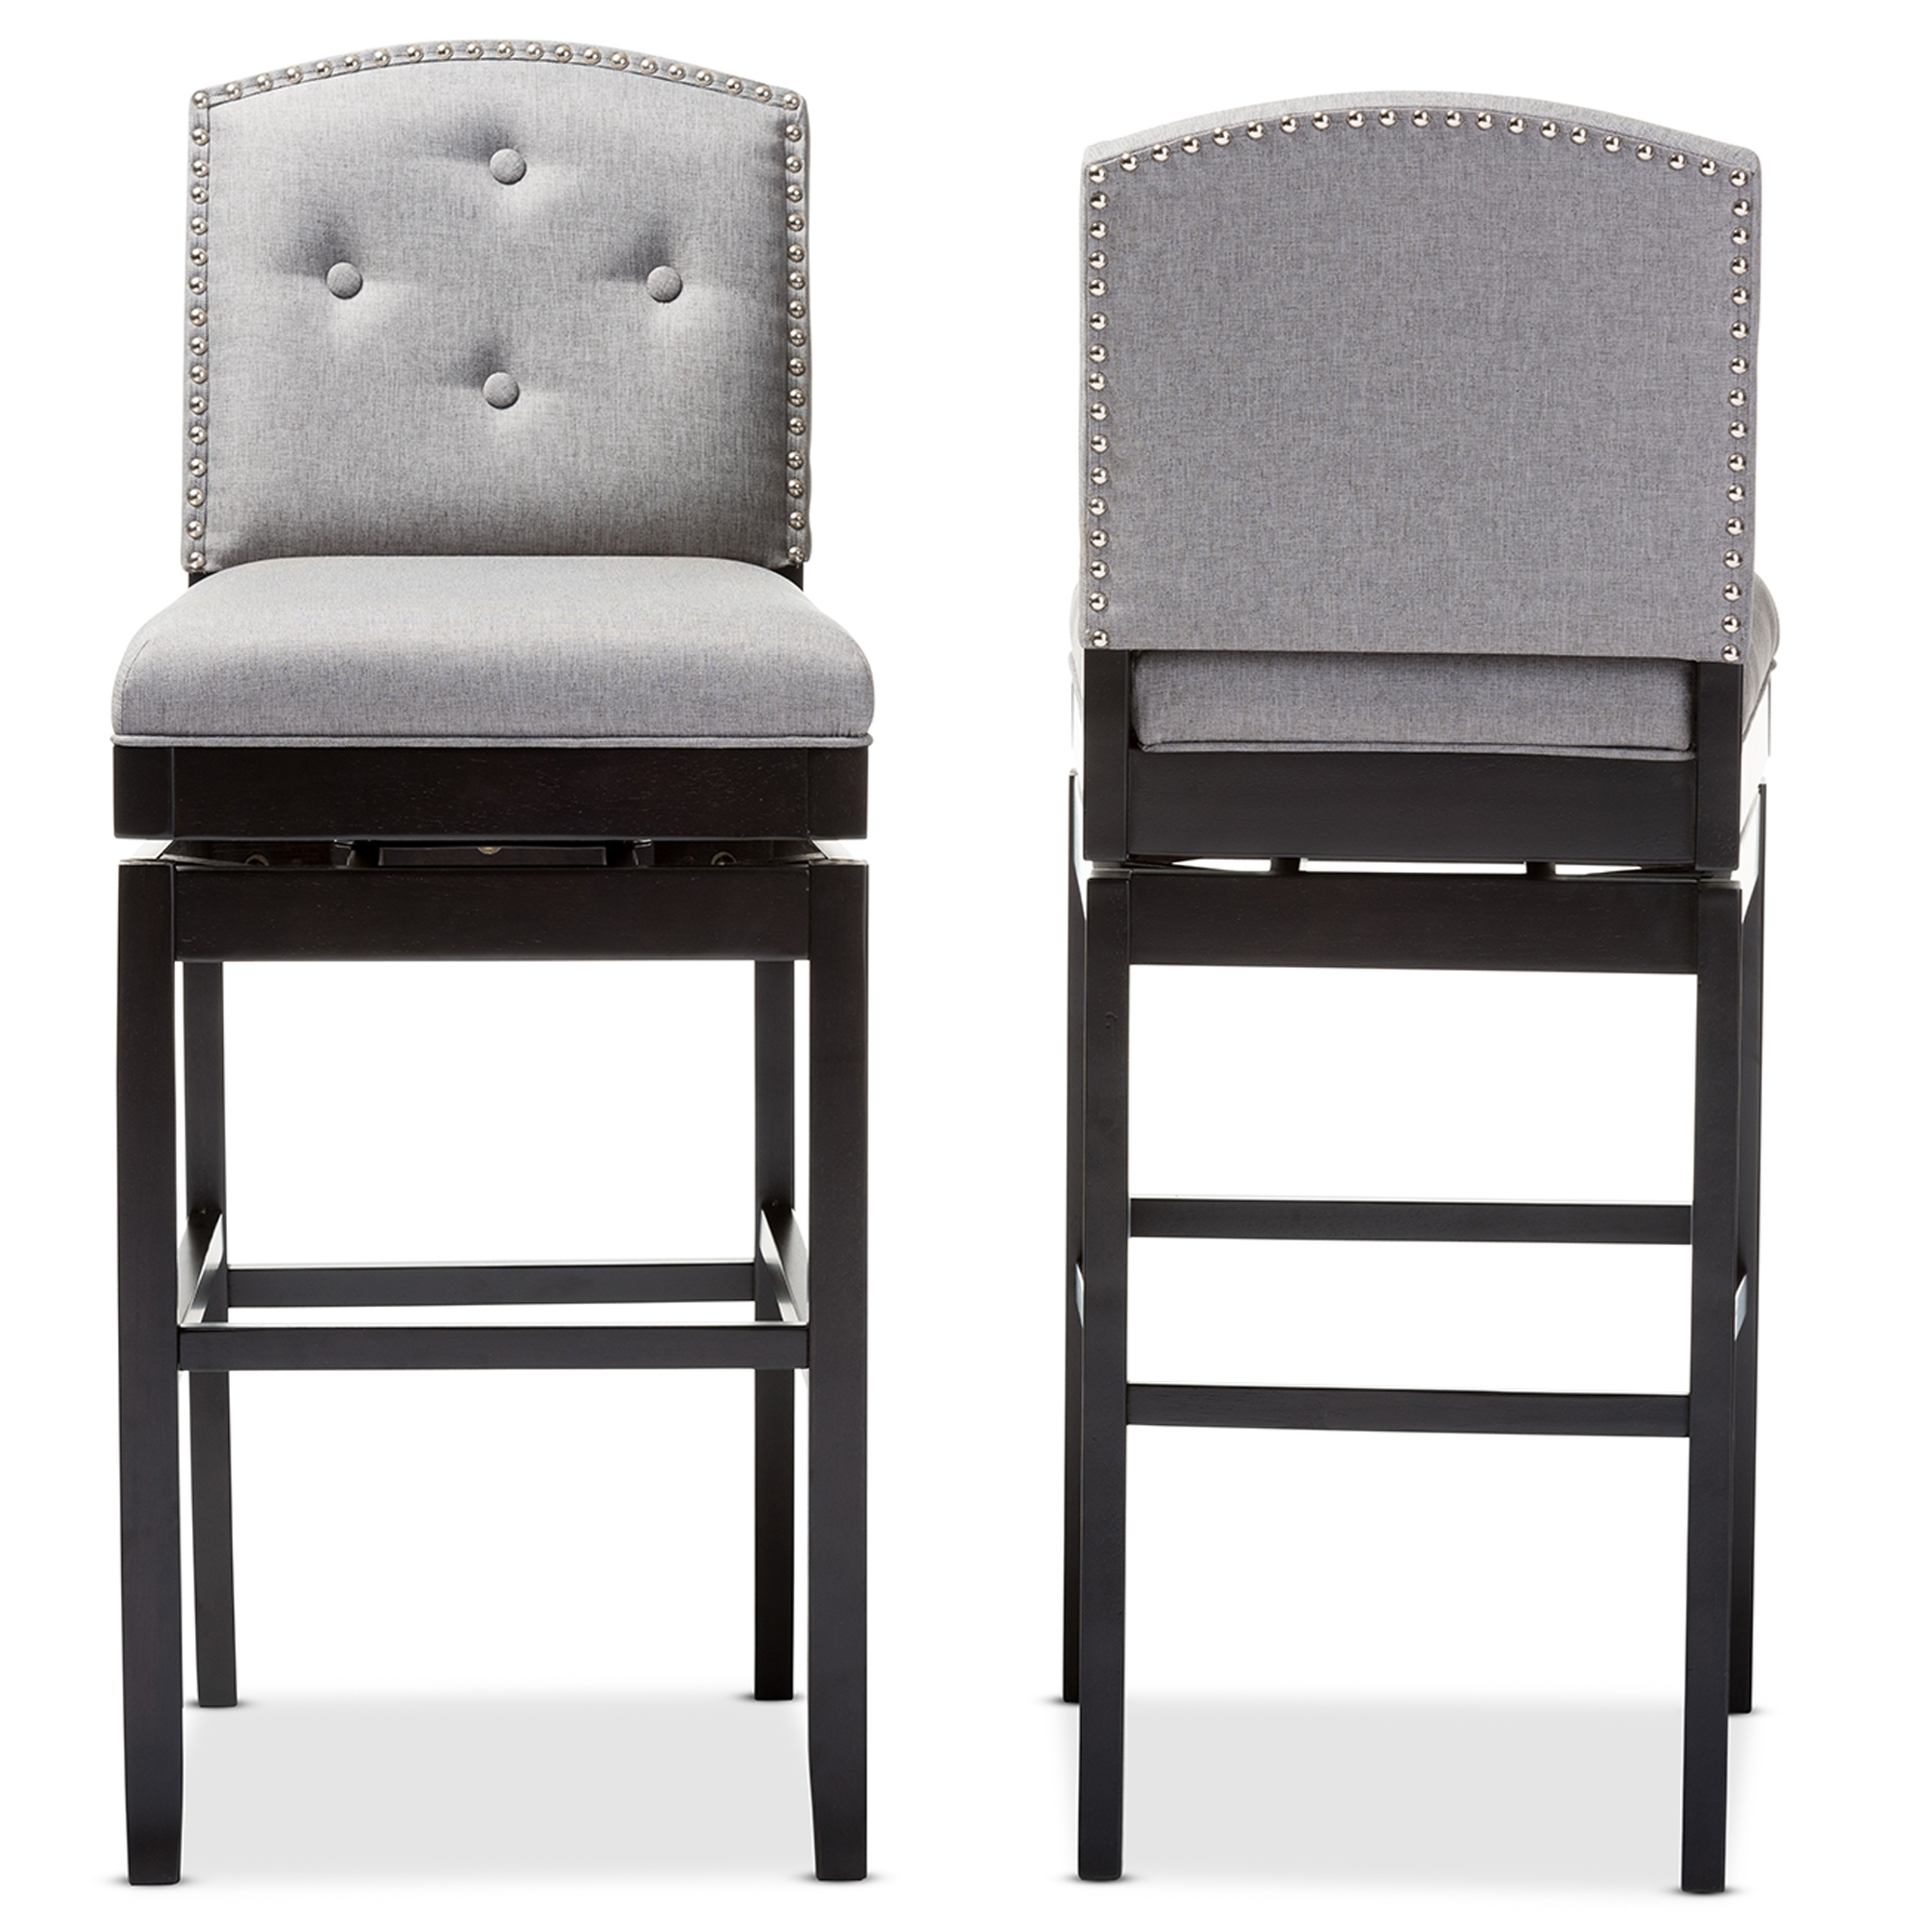 Charming Baxton Studio Ginaro Modern And Contemporary Grey Fabric Button Tufted  Upholstered Swivel Bar Stool Affordable